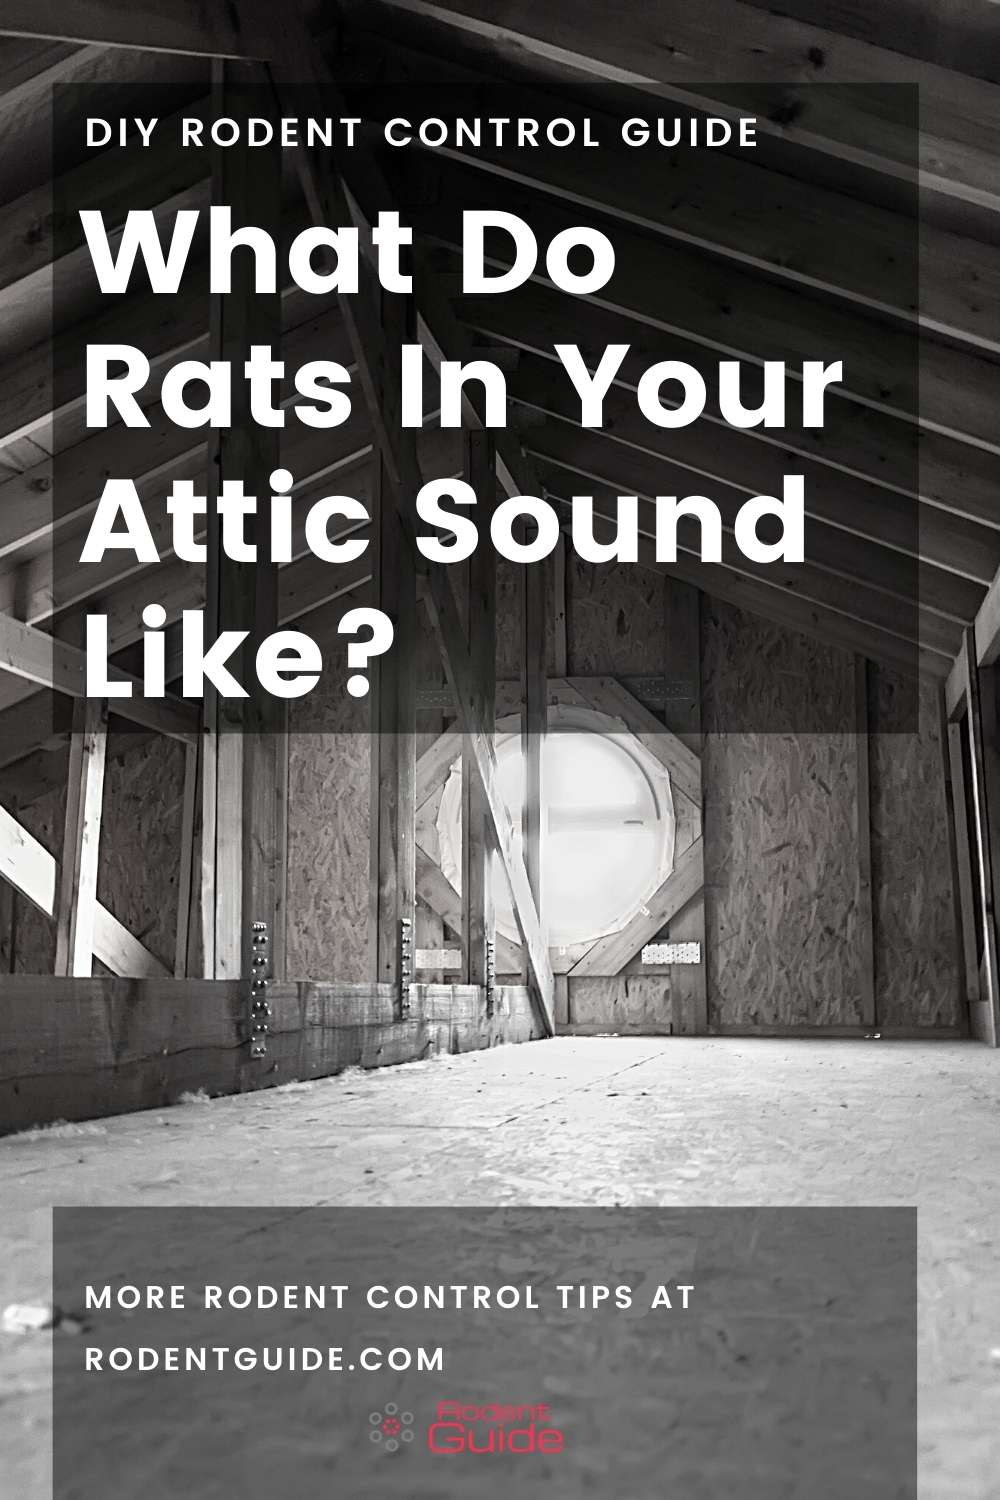 What Do Rats In Your Attic Sound Like